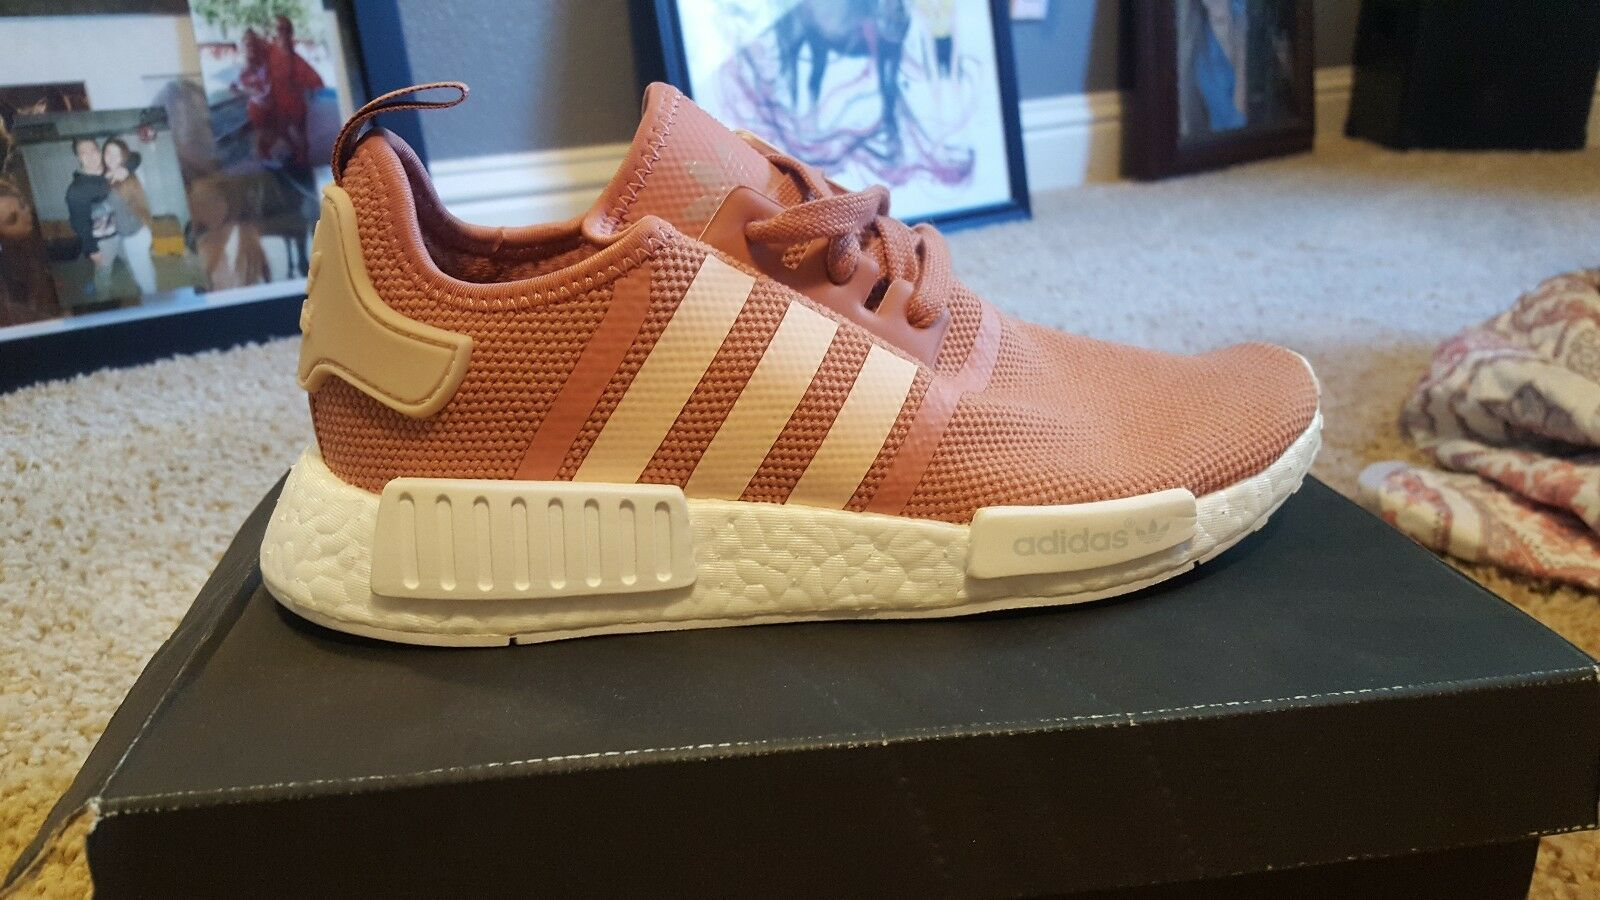 Adidas NMD R1 Runner W Nomad Women's WMNS  Size 9.5 Peach Pink Salmon